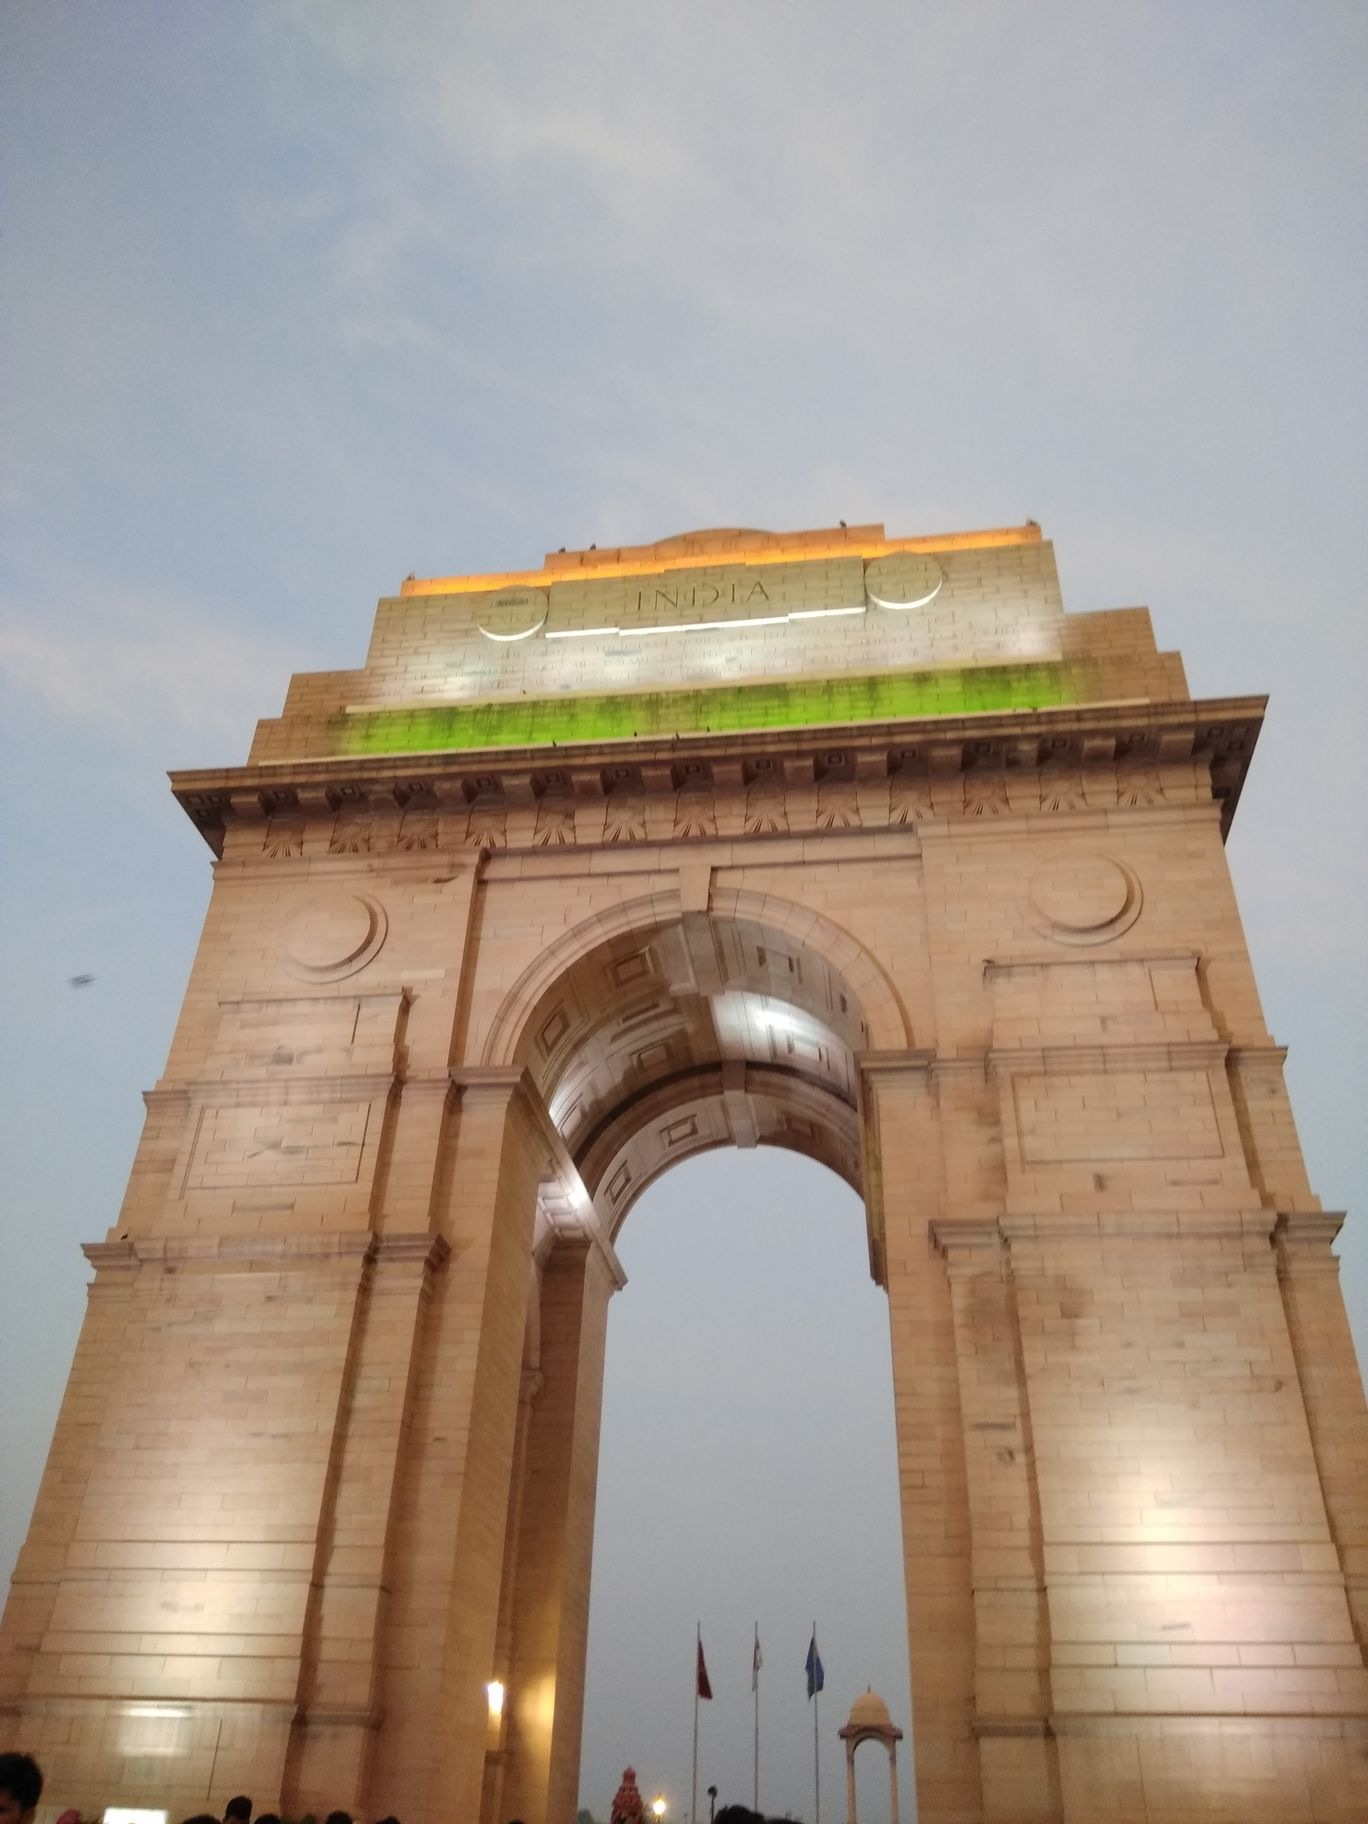 Photo of India Gate By Naman Jain